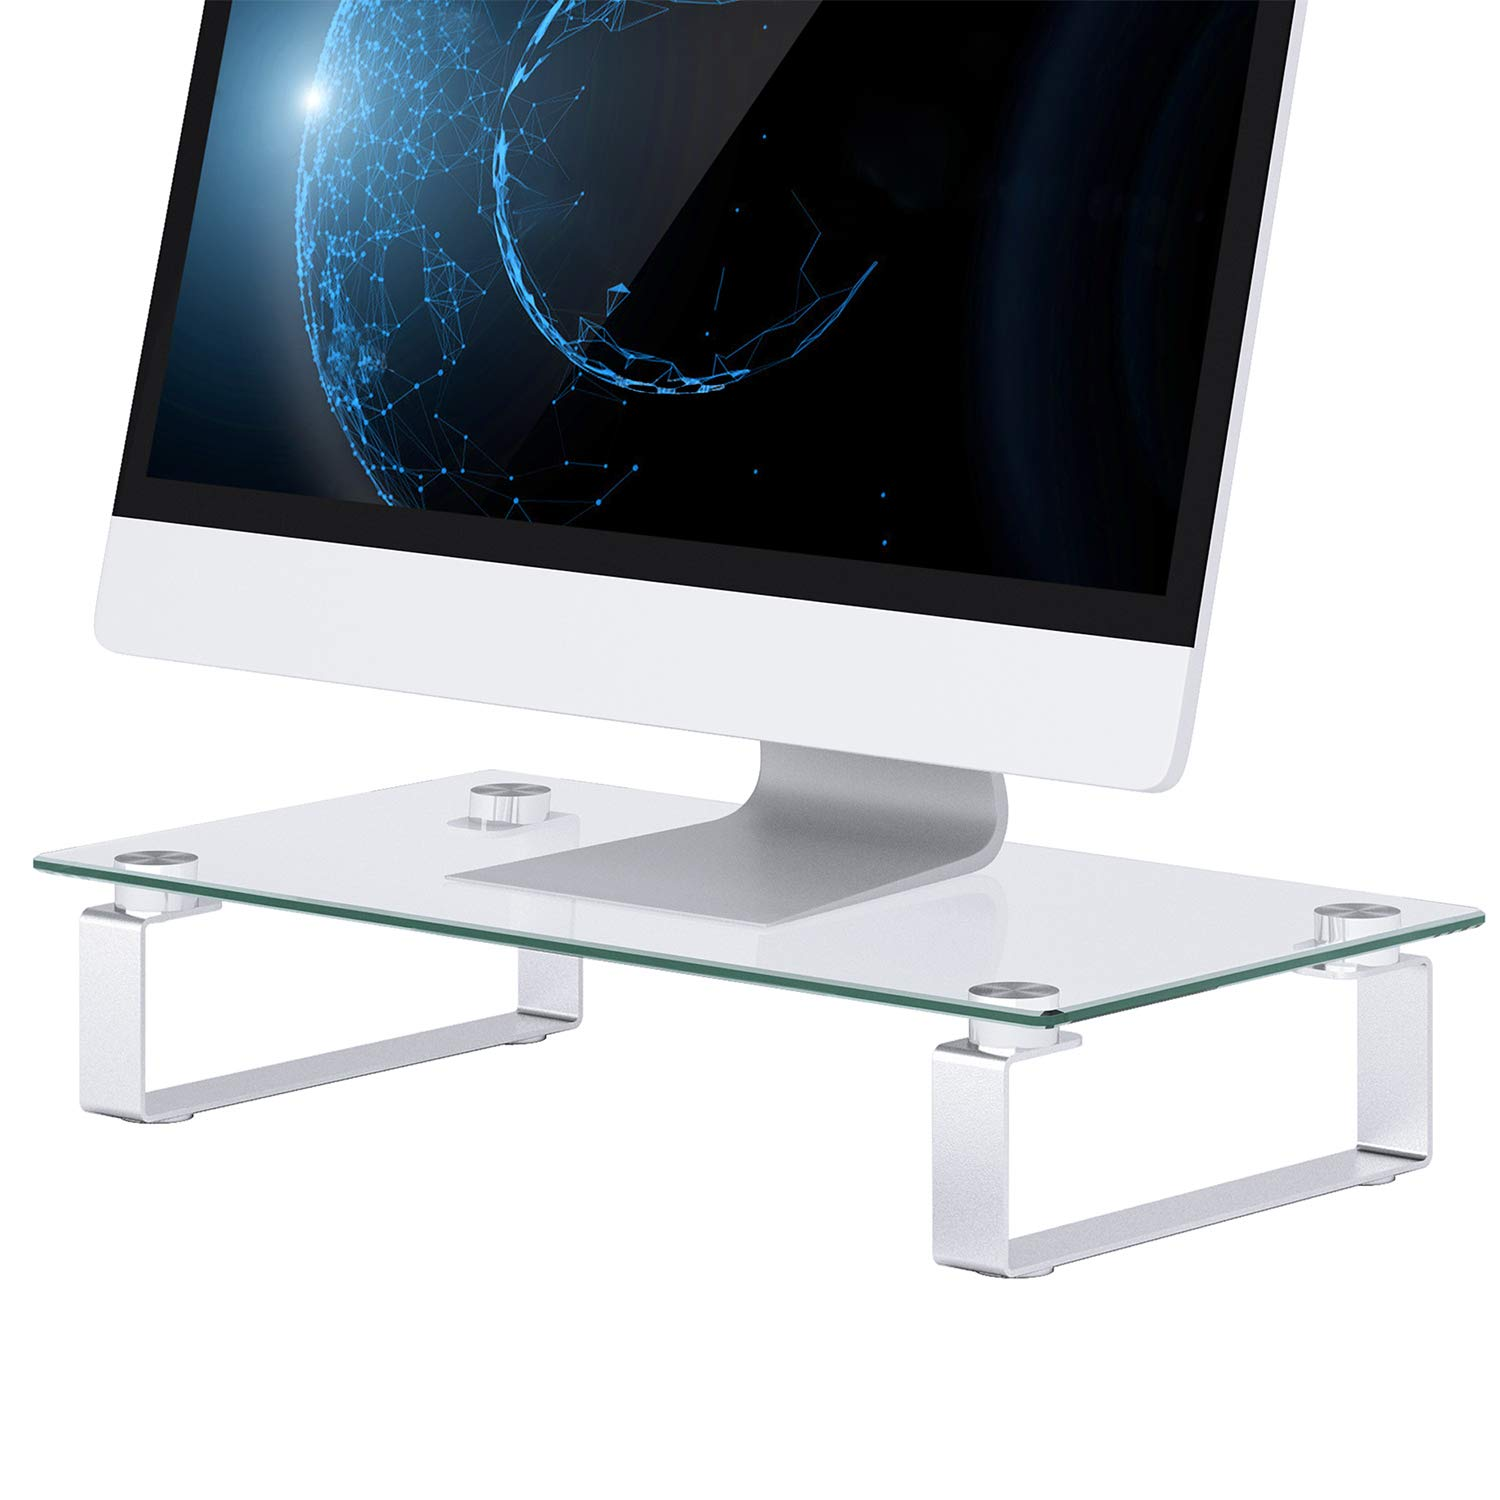 Glass Monitor Stand - Monitor Stand Riser with Anti Slip Legs, Tempered Glass Premium Ergonomic Screen Holder Suitable for LED LCD TV Monitor, Notebook, Computer up to 44lbs by HUANUO (Image #1)